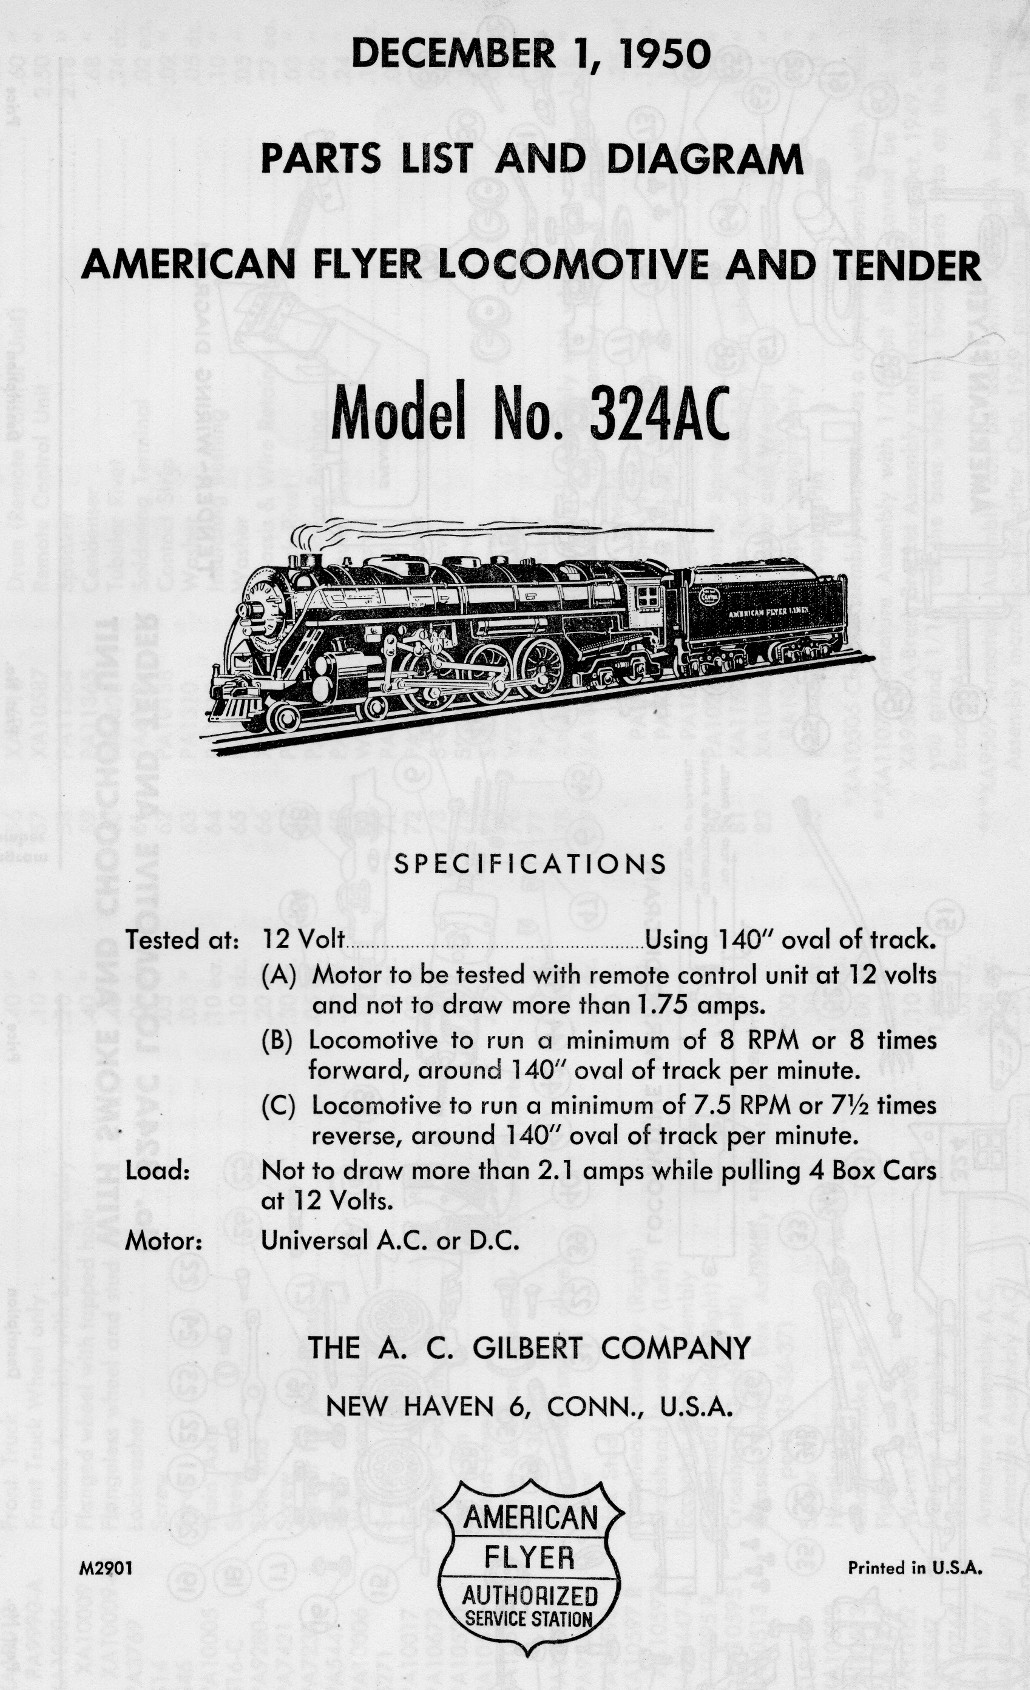 American Flyer Locomotive 324AC Parts List and Diagram - Page 1